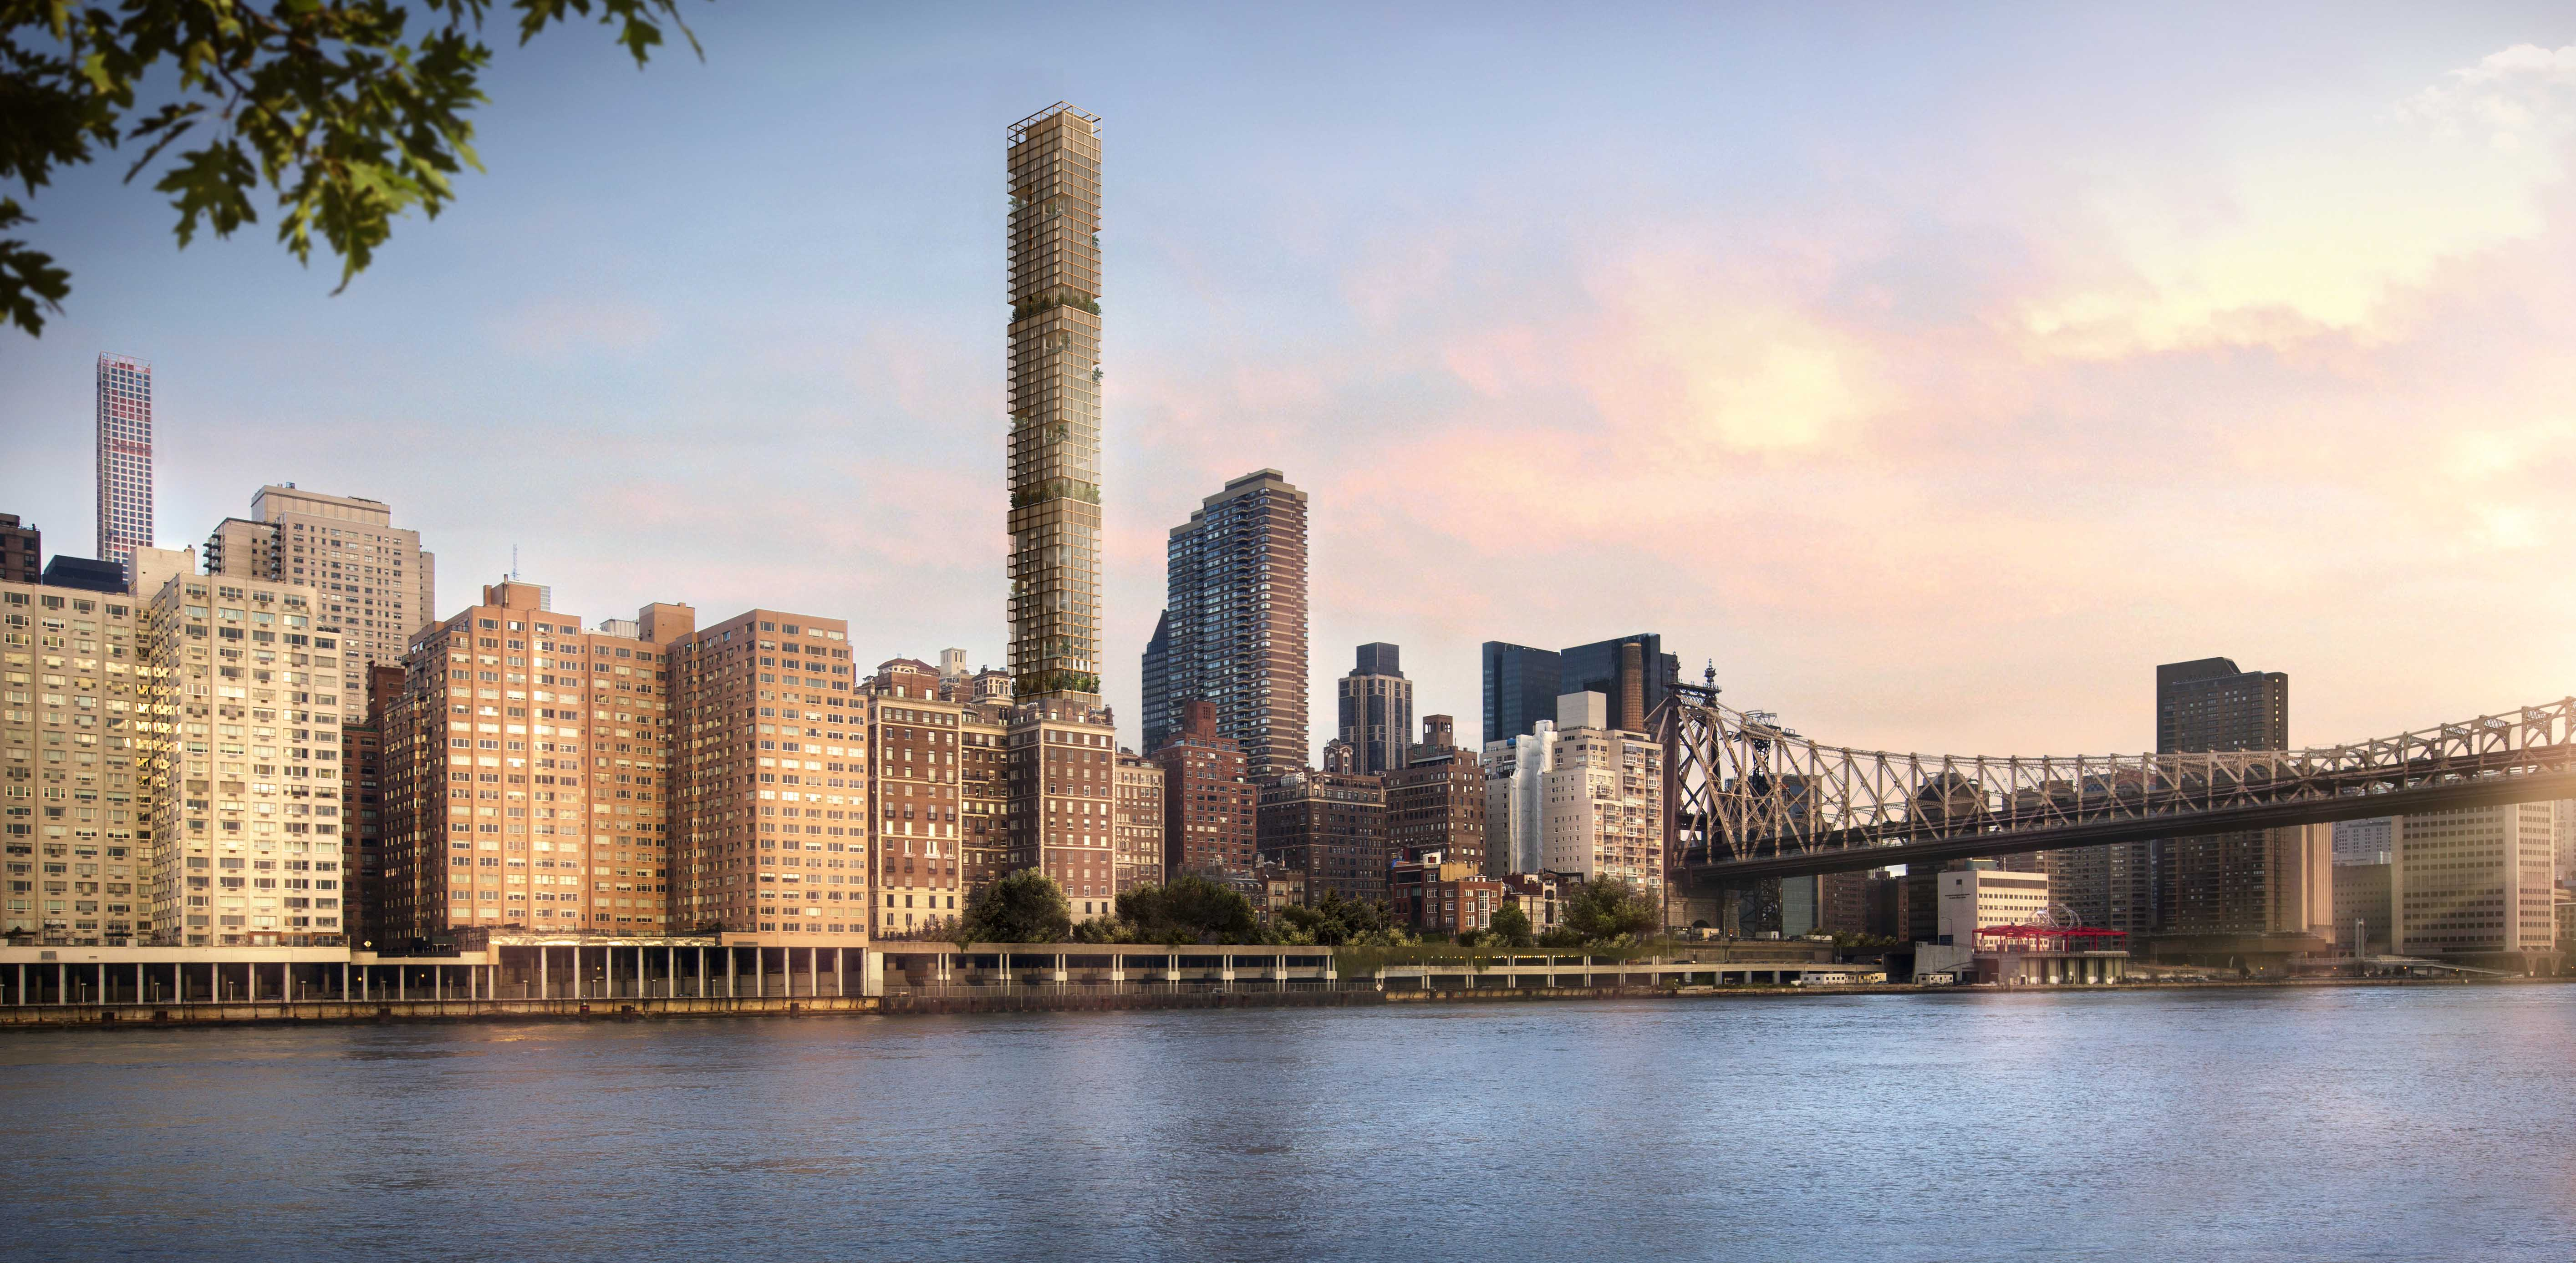 Rendering of 426-432 East 58th Street by Foster + Partners.